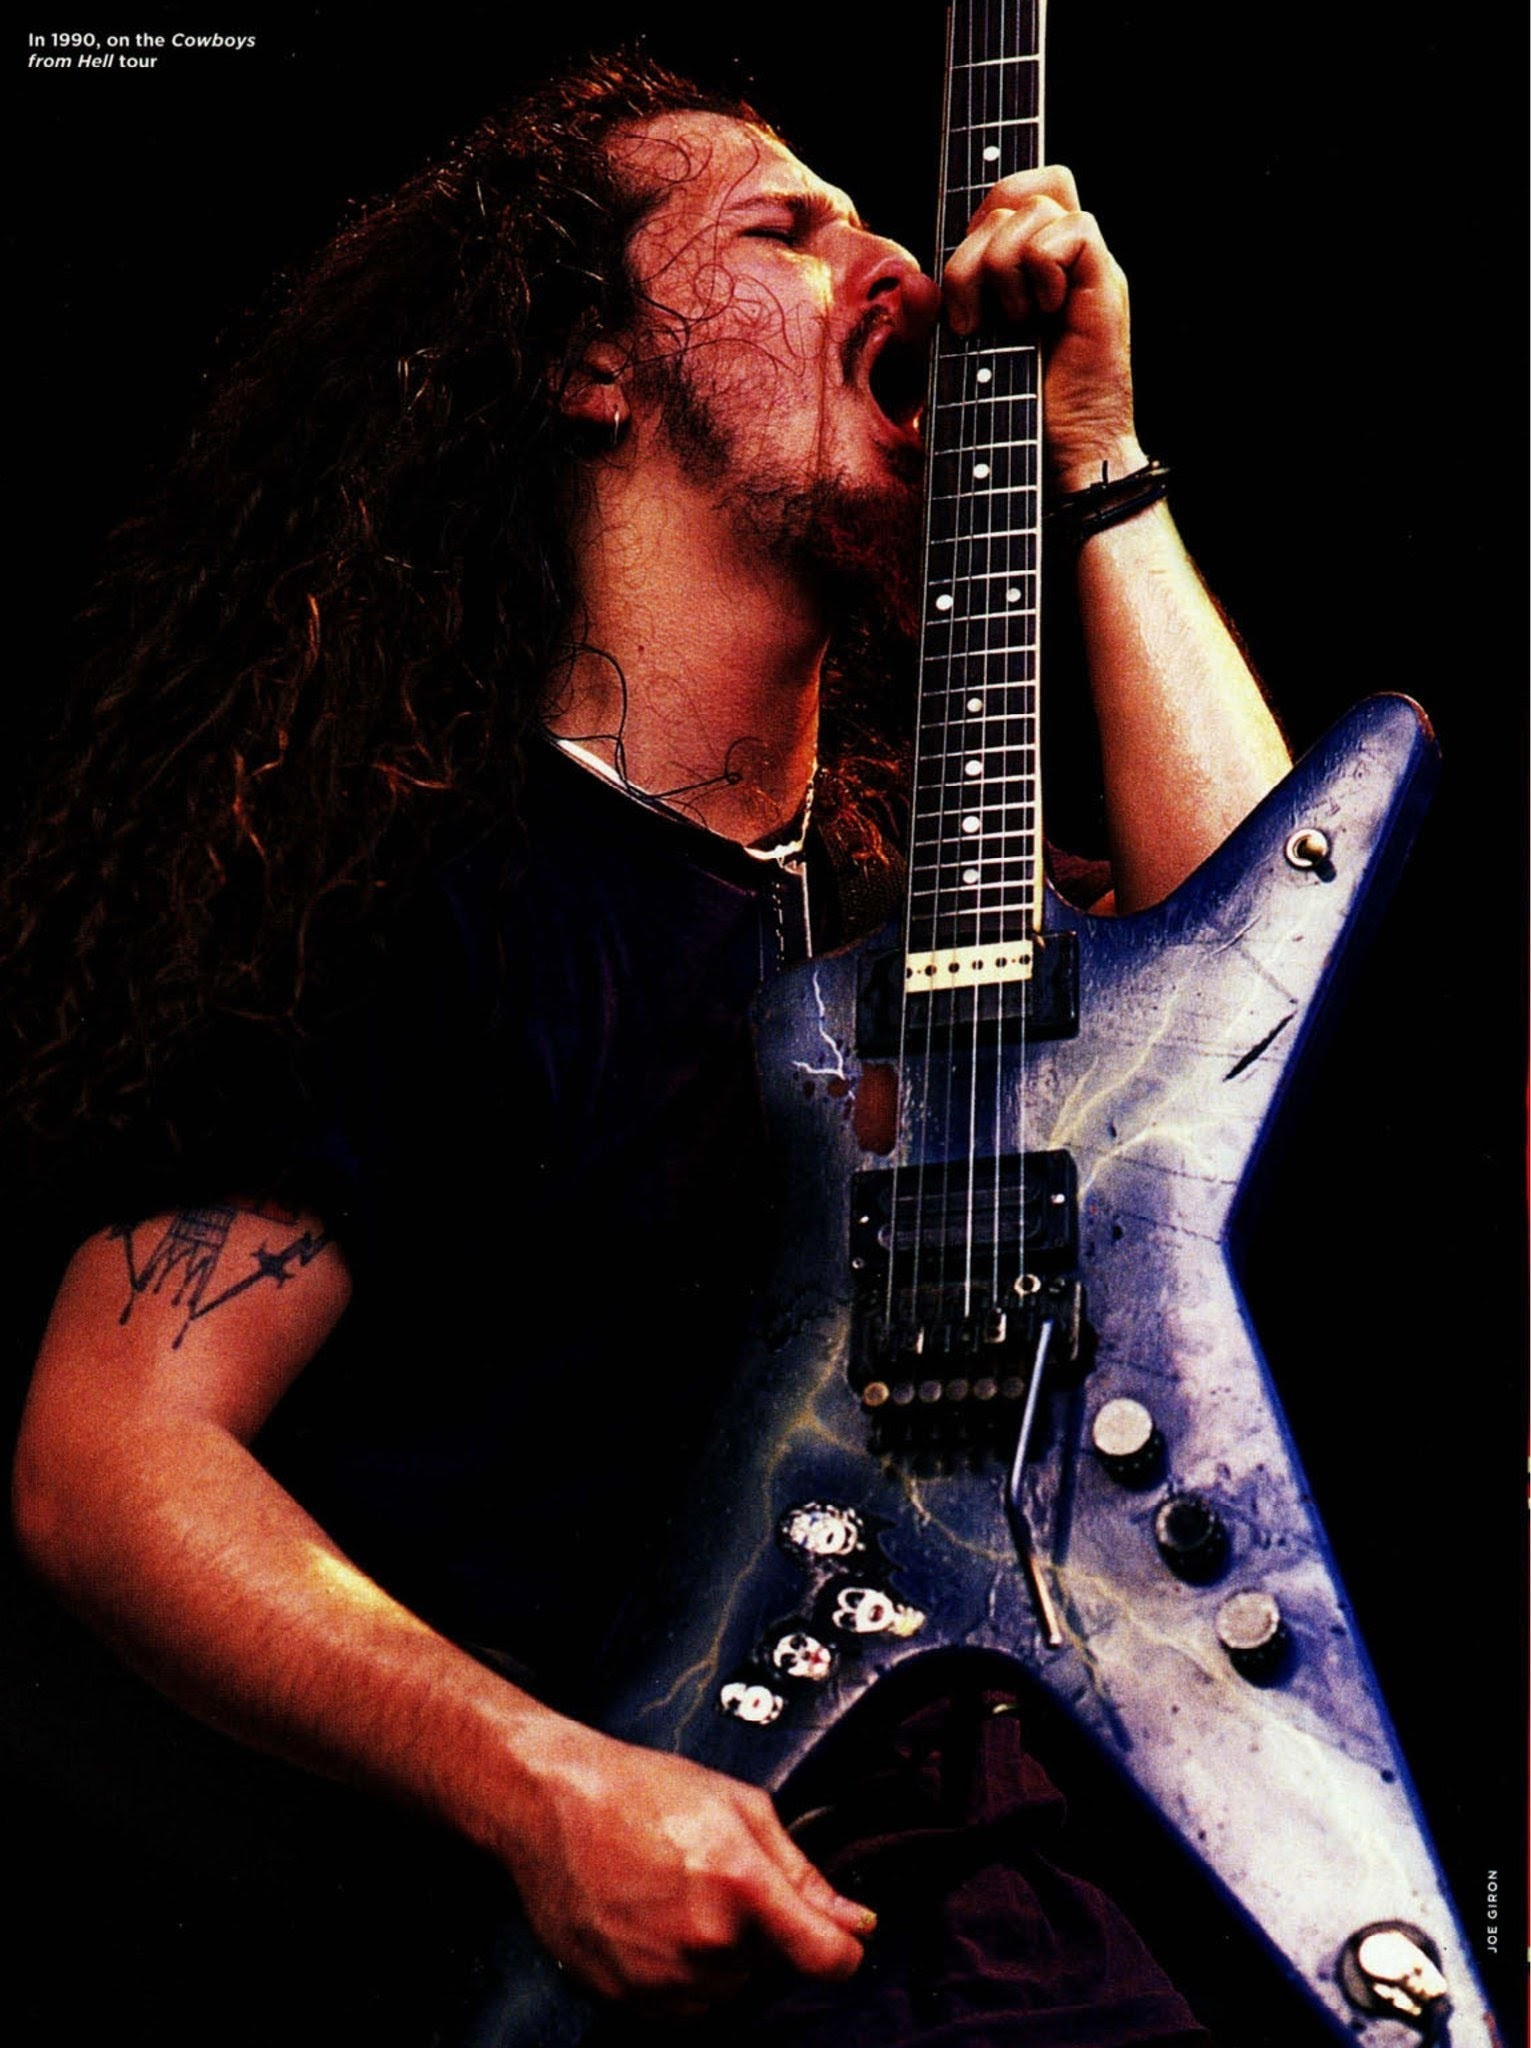 Guitar Hd Wallpapers With Quotes Dimebag Darrell Wallpaper 50 Images